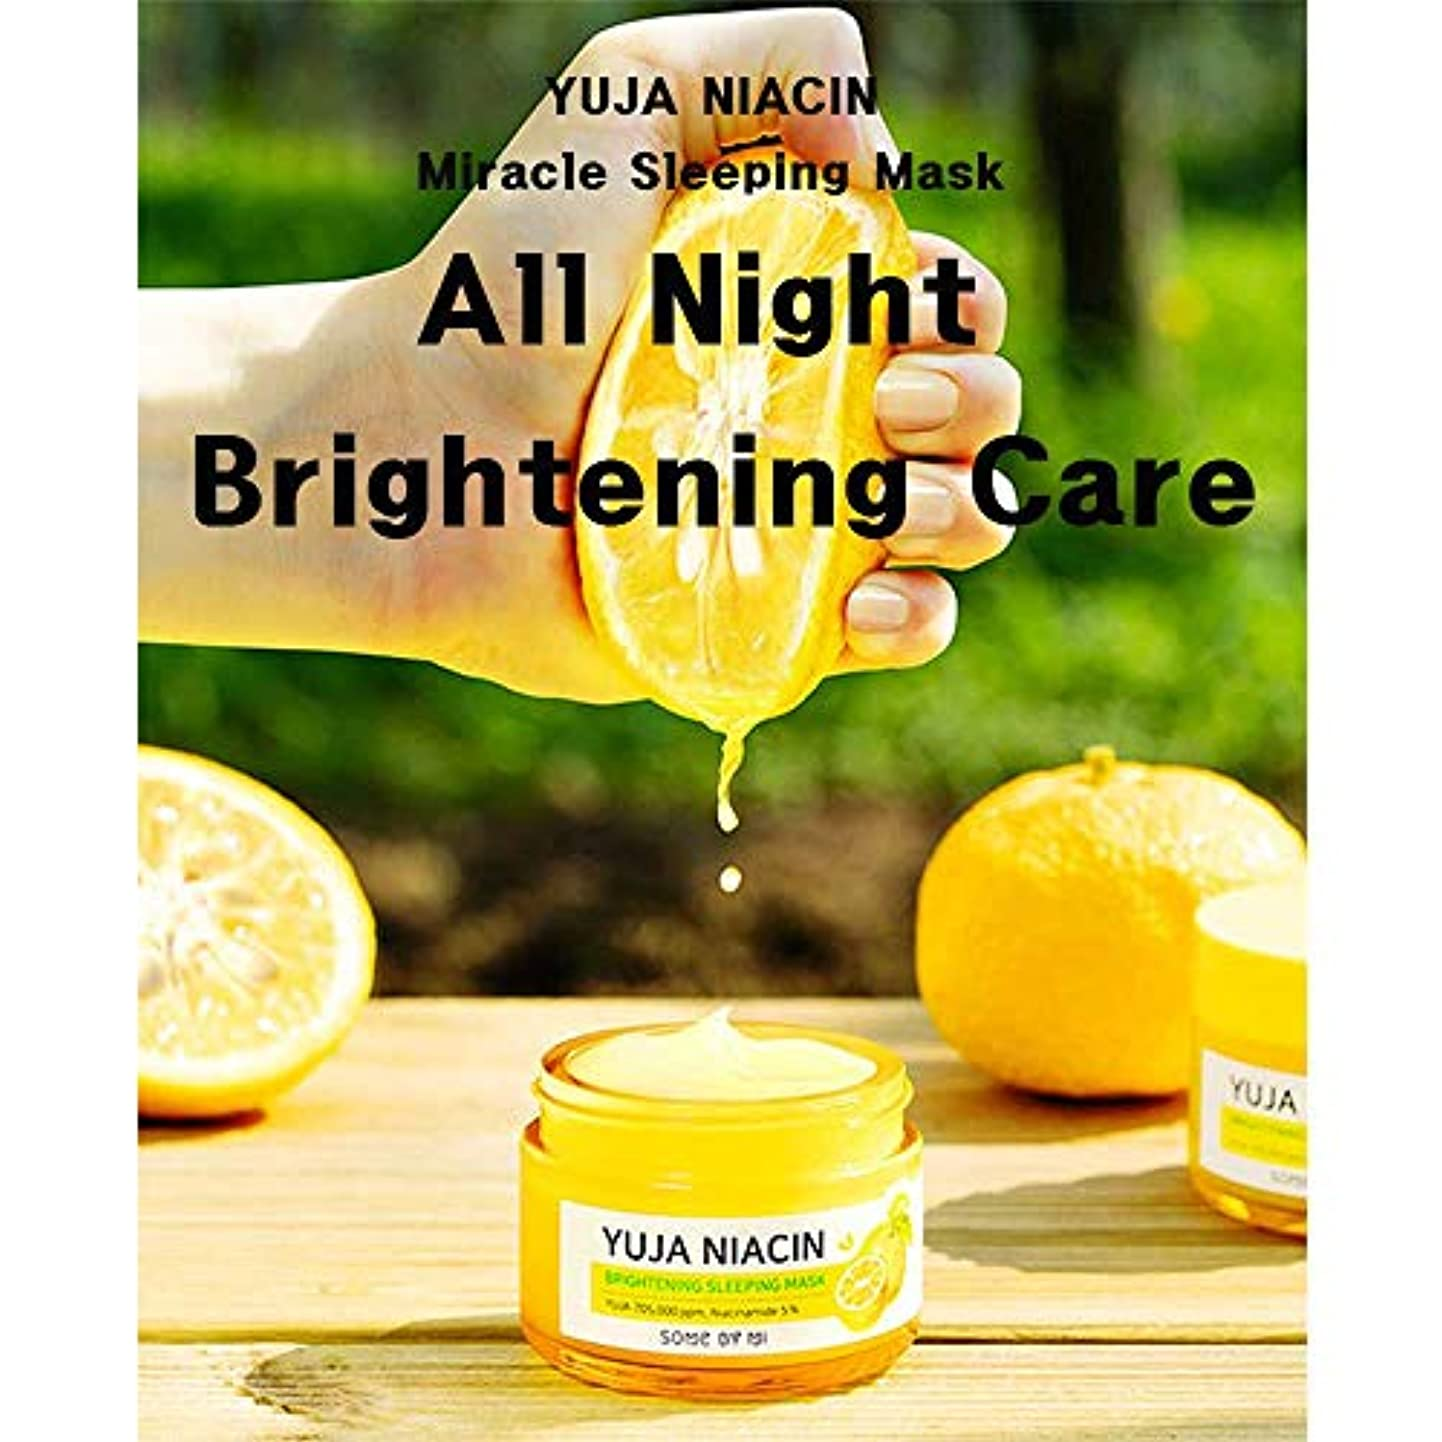 釈義コンプリート手のひらSOEMBYMI YUJA NIACIN 30 DAYS MIRACLE BRIGHTENING SLEEPING MASK 60g